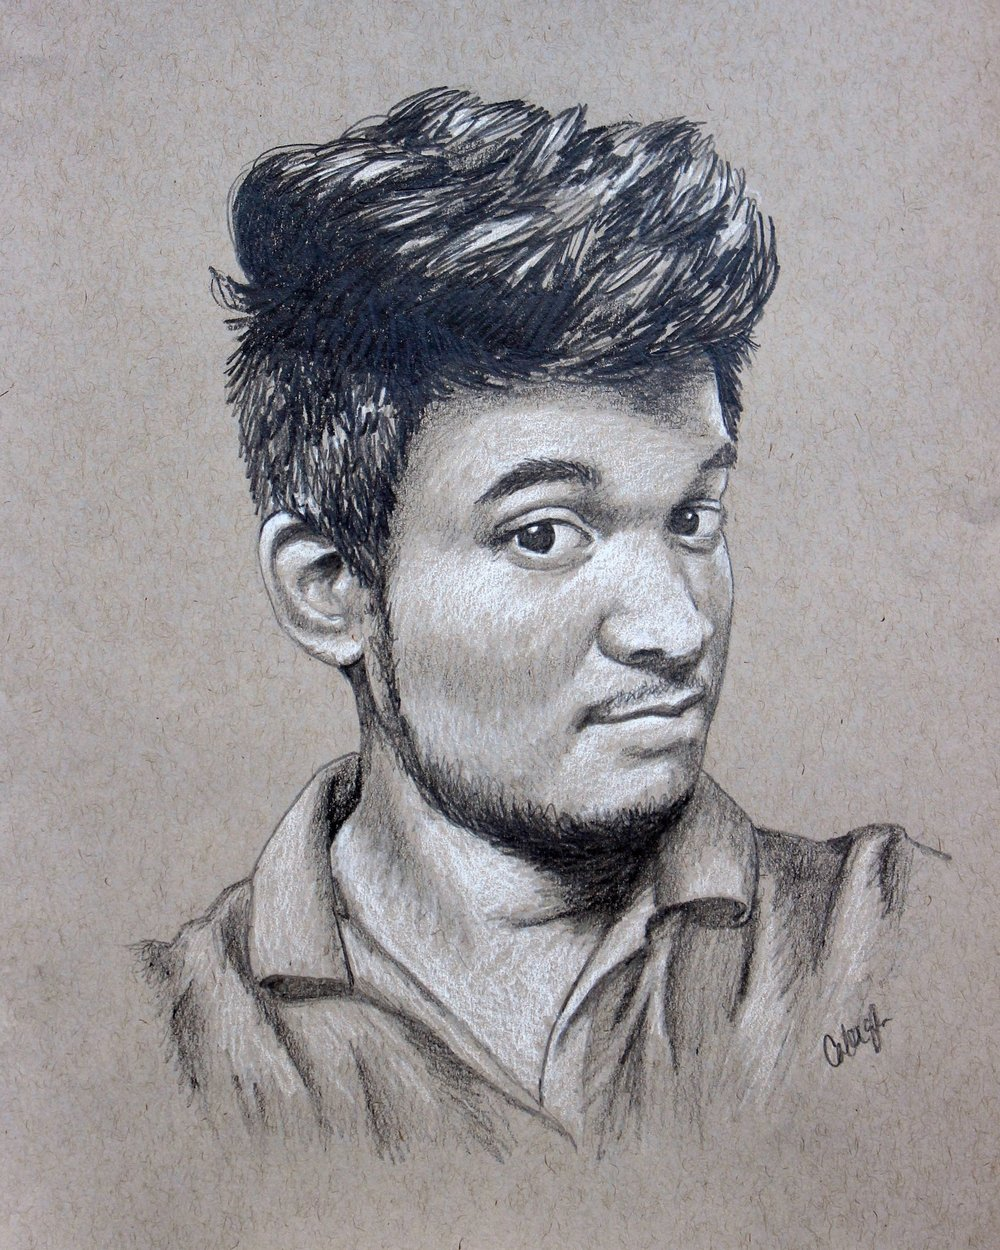 custom portrait drawing of a young Arab man